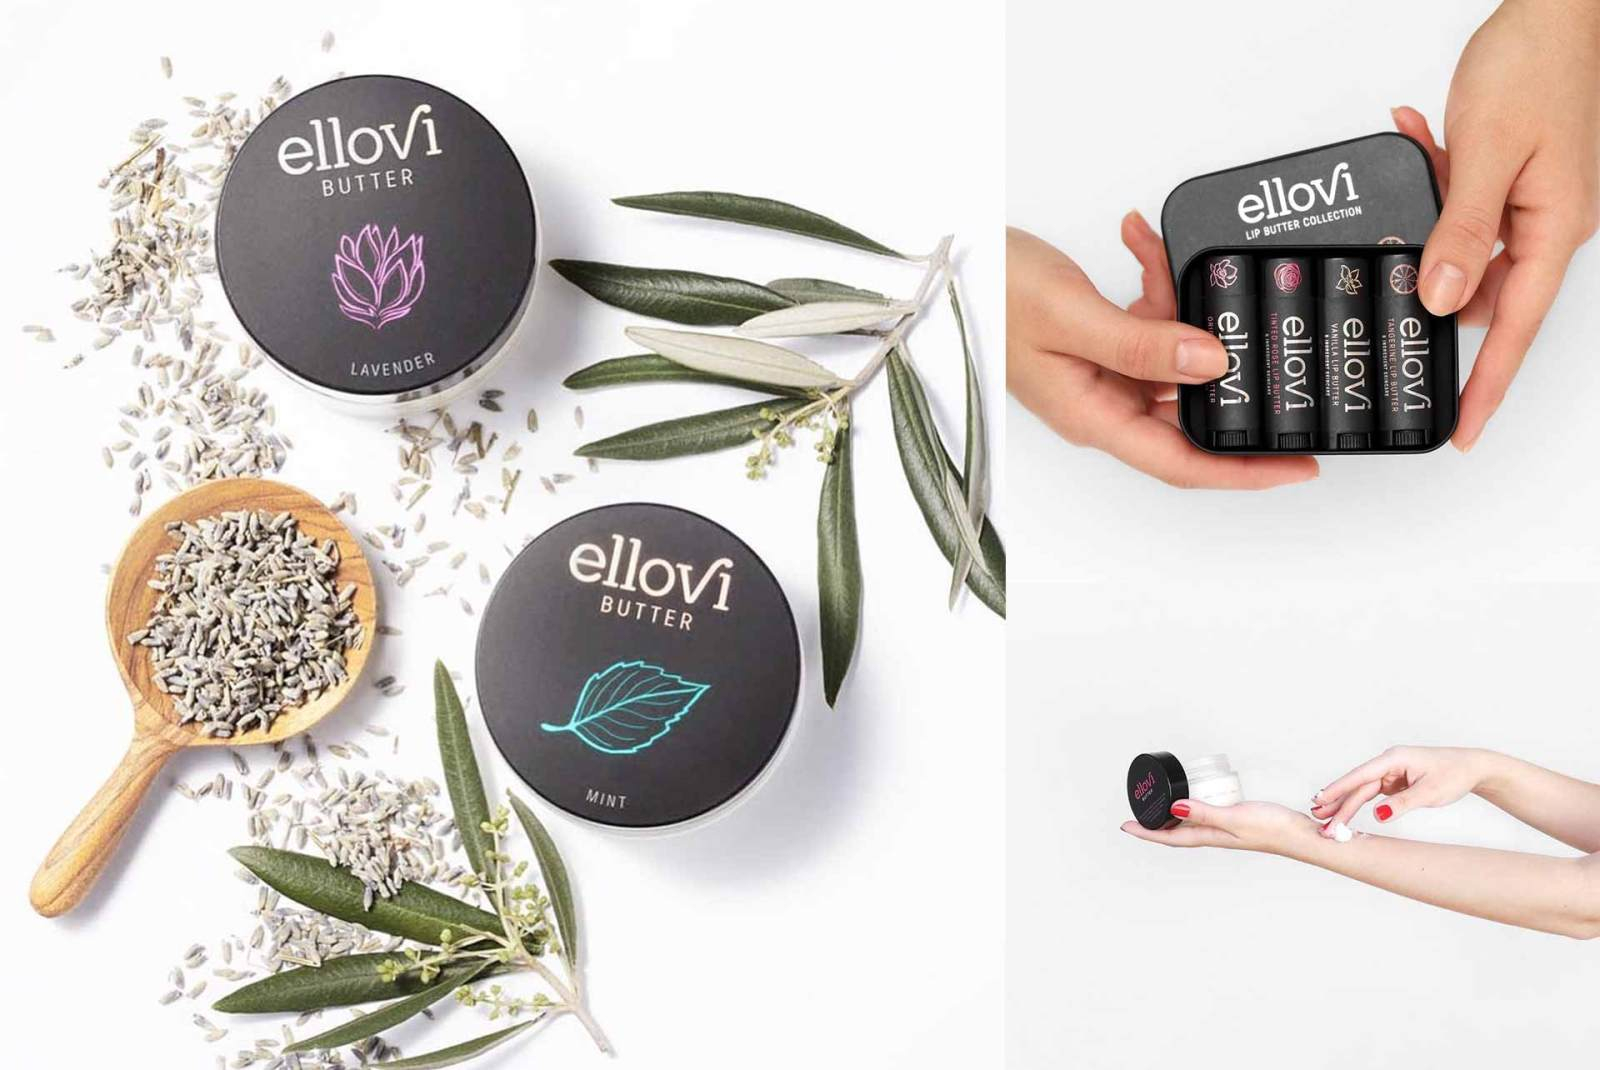 Is Ellovi Cruelty-Free & Vegan?